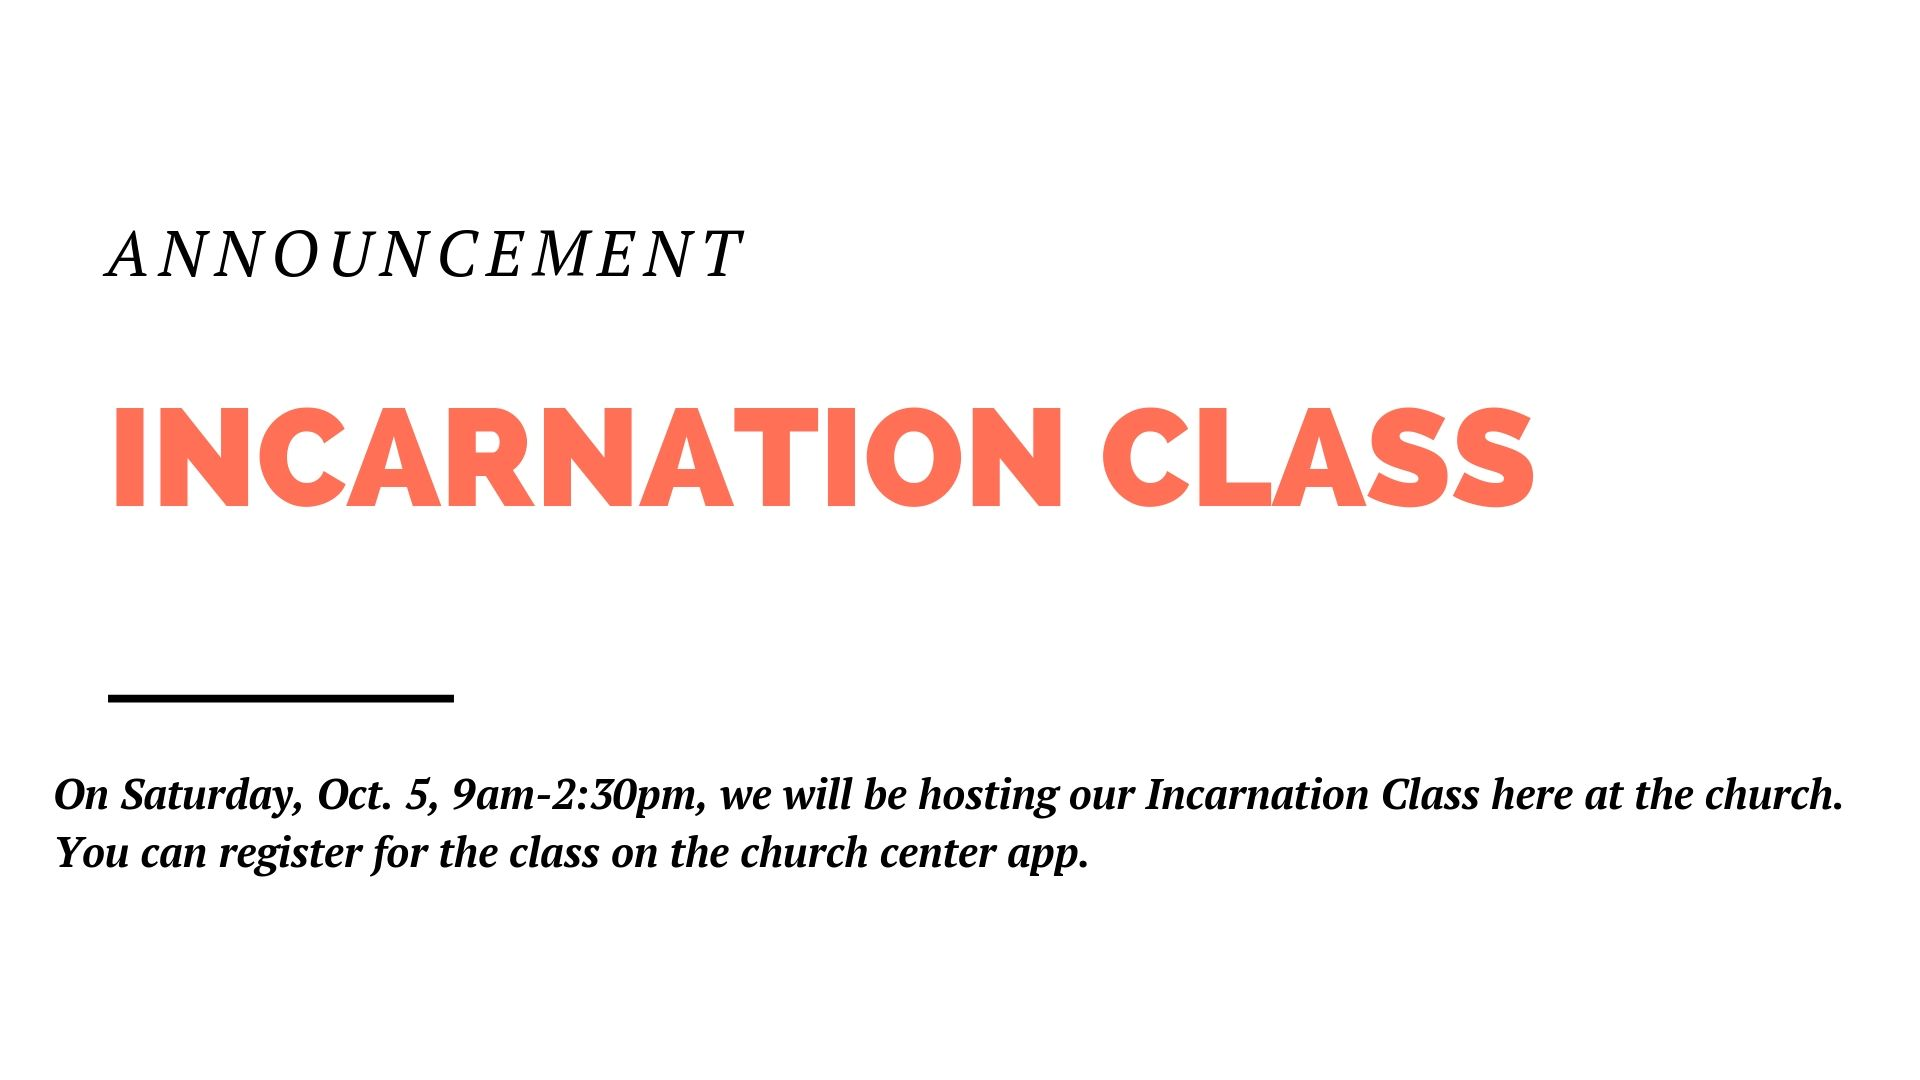 On Saturday, Oct. 5, 9am-2:30pm, we will be hosting our Incarnation Class at the church. This class is for anyone interested in church membership at The Painted Door or simply in learning more about our beliefs and rhythms. You can register for the class on the church center app.